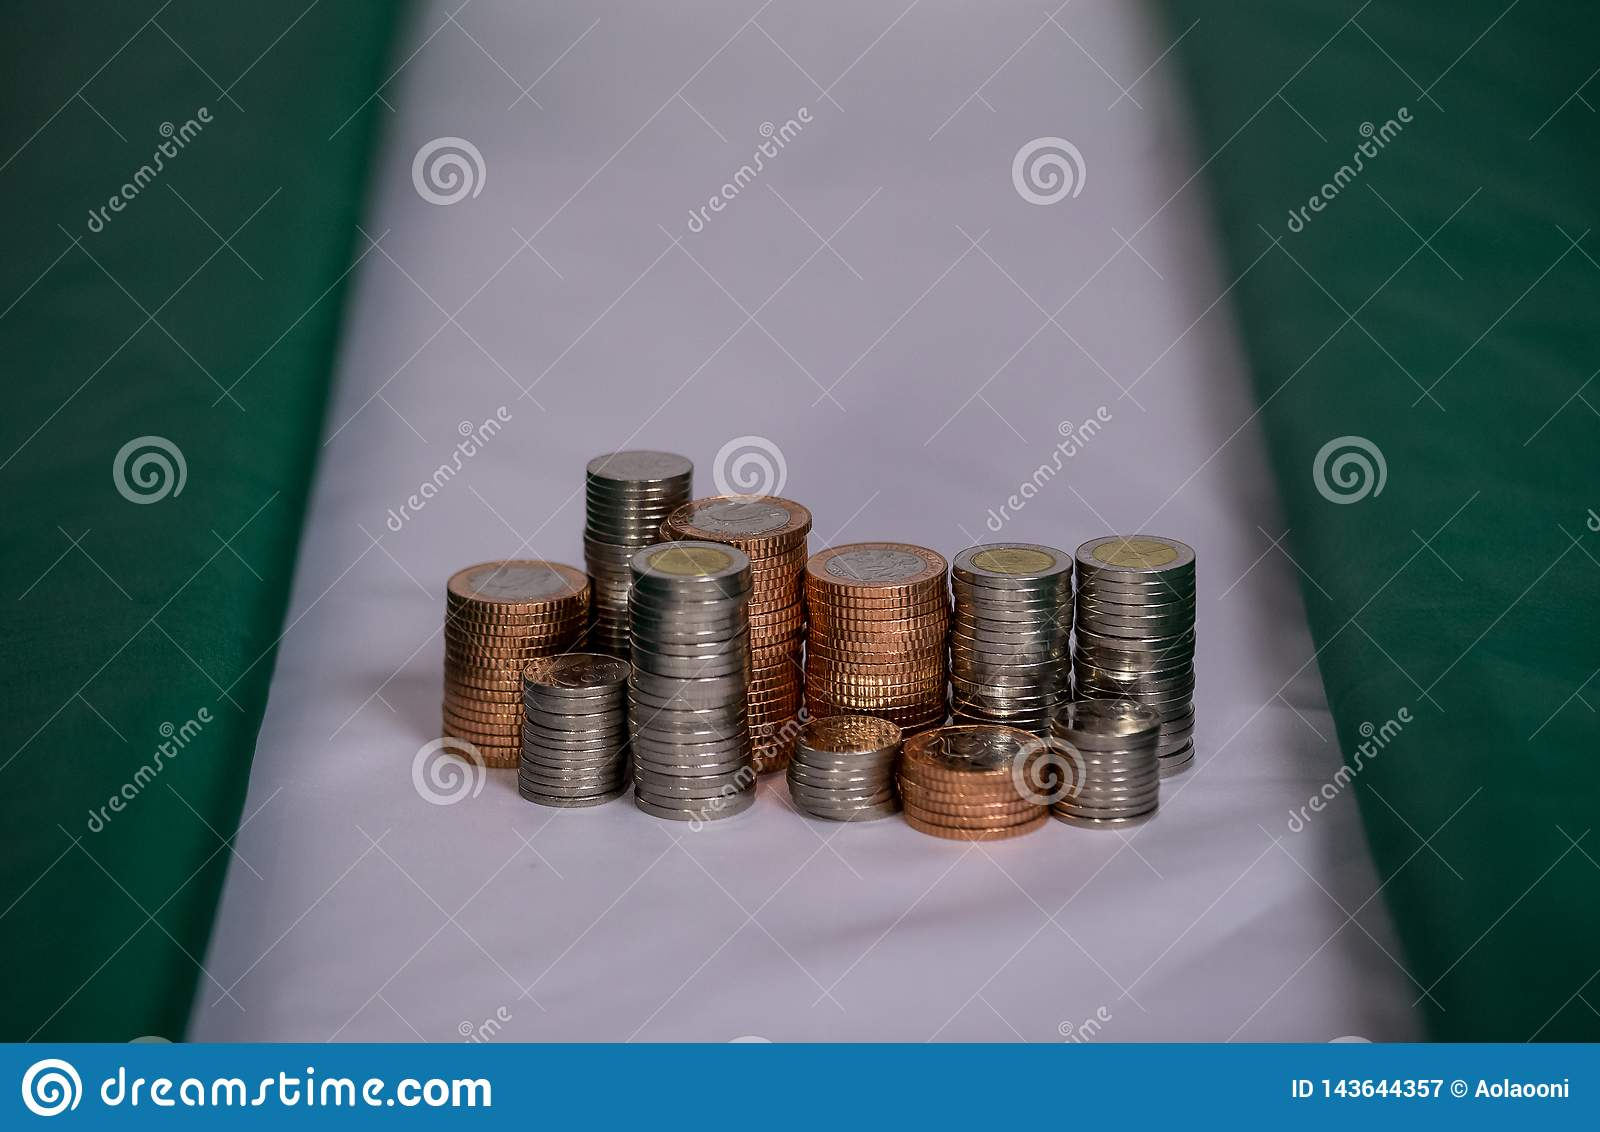 Nigeria flag with coins in a stack